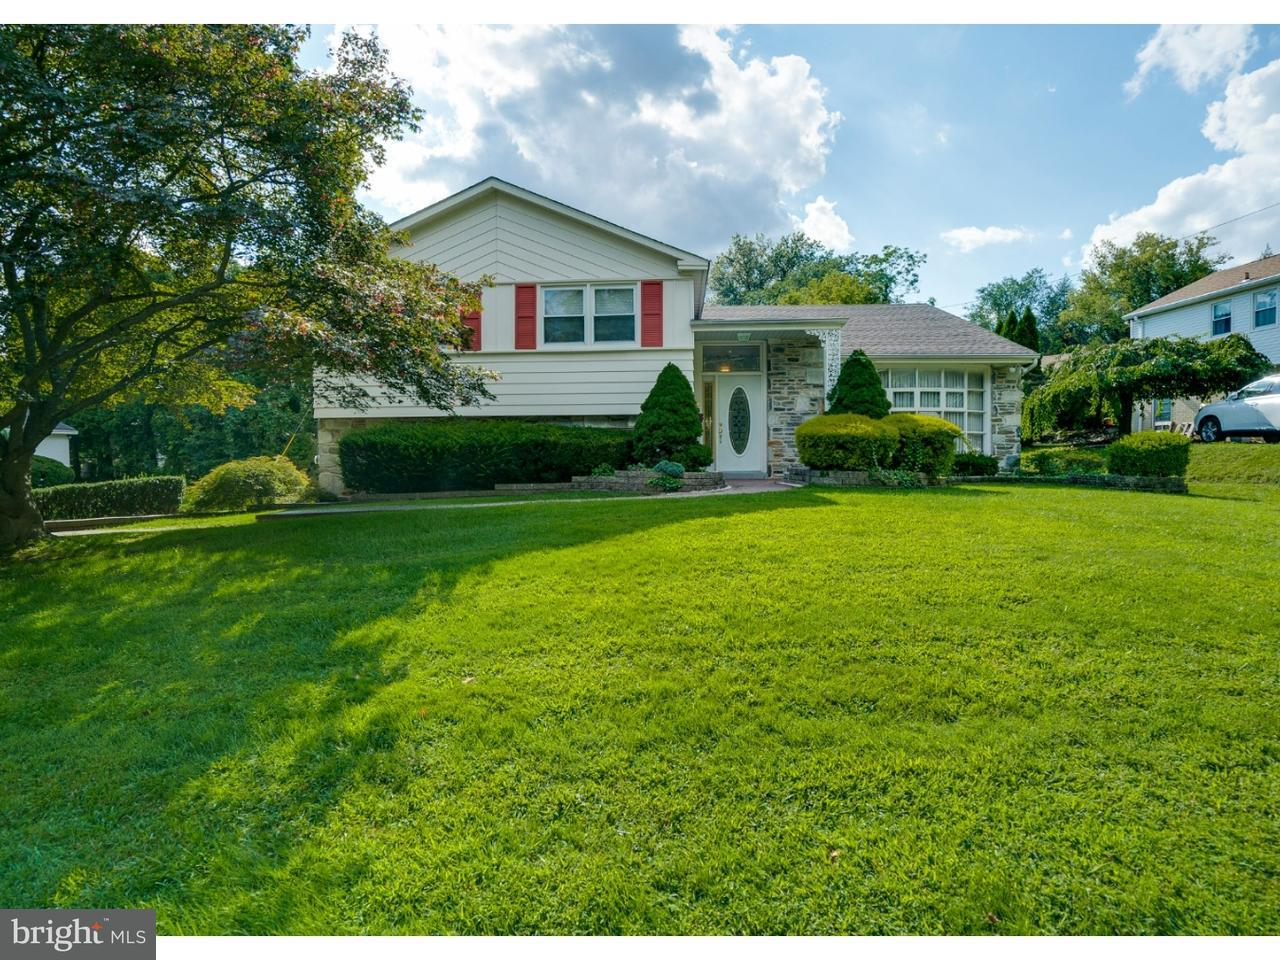 Single Family Home for Sale at 7914 WALTHAM Road Cheltenham, Pennsylvania 19012 United States